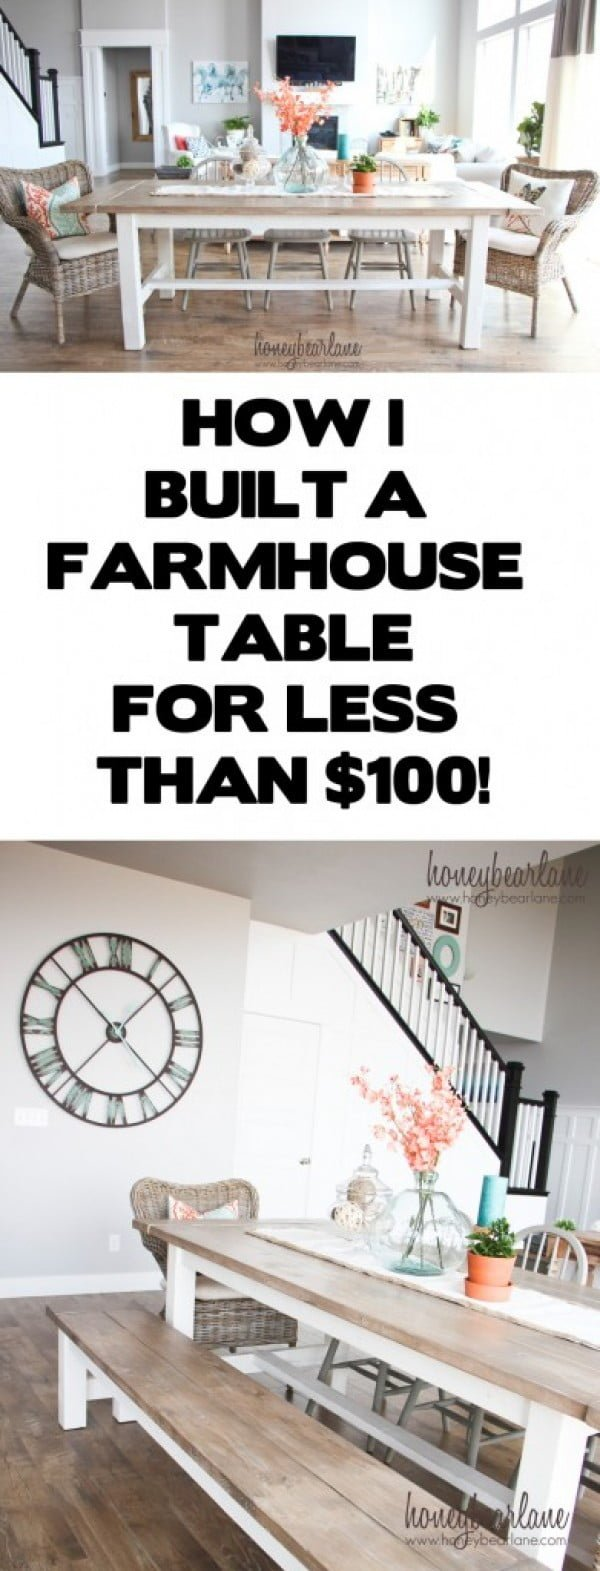 Check out how to make your own easy DIY farmhouse table